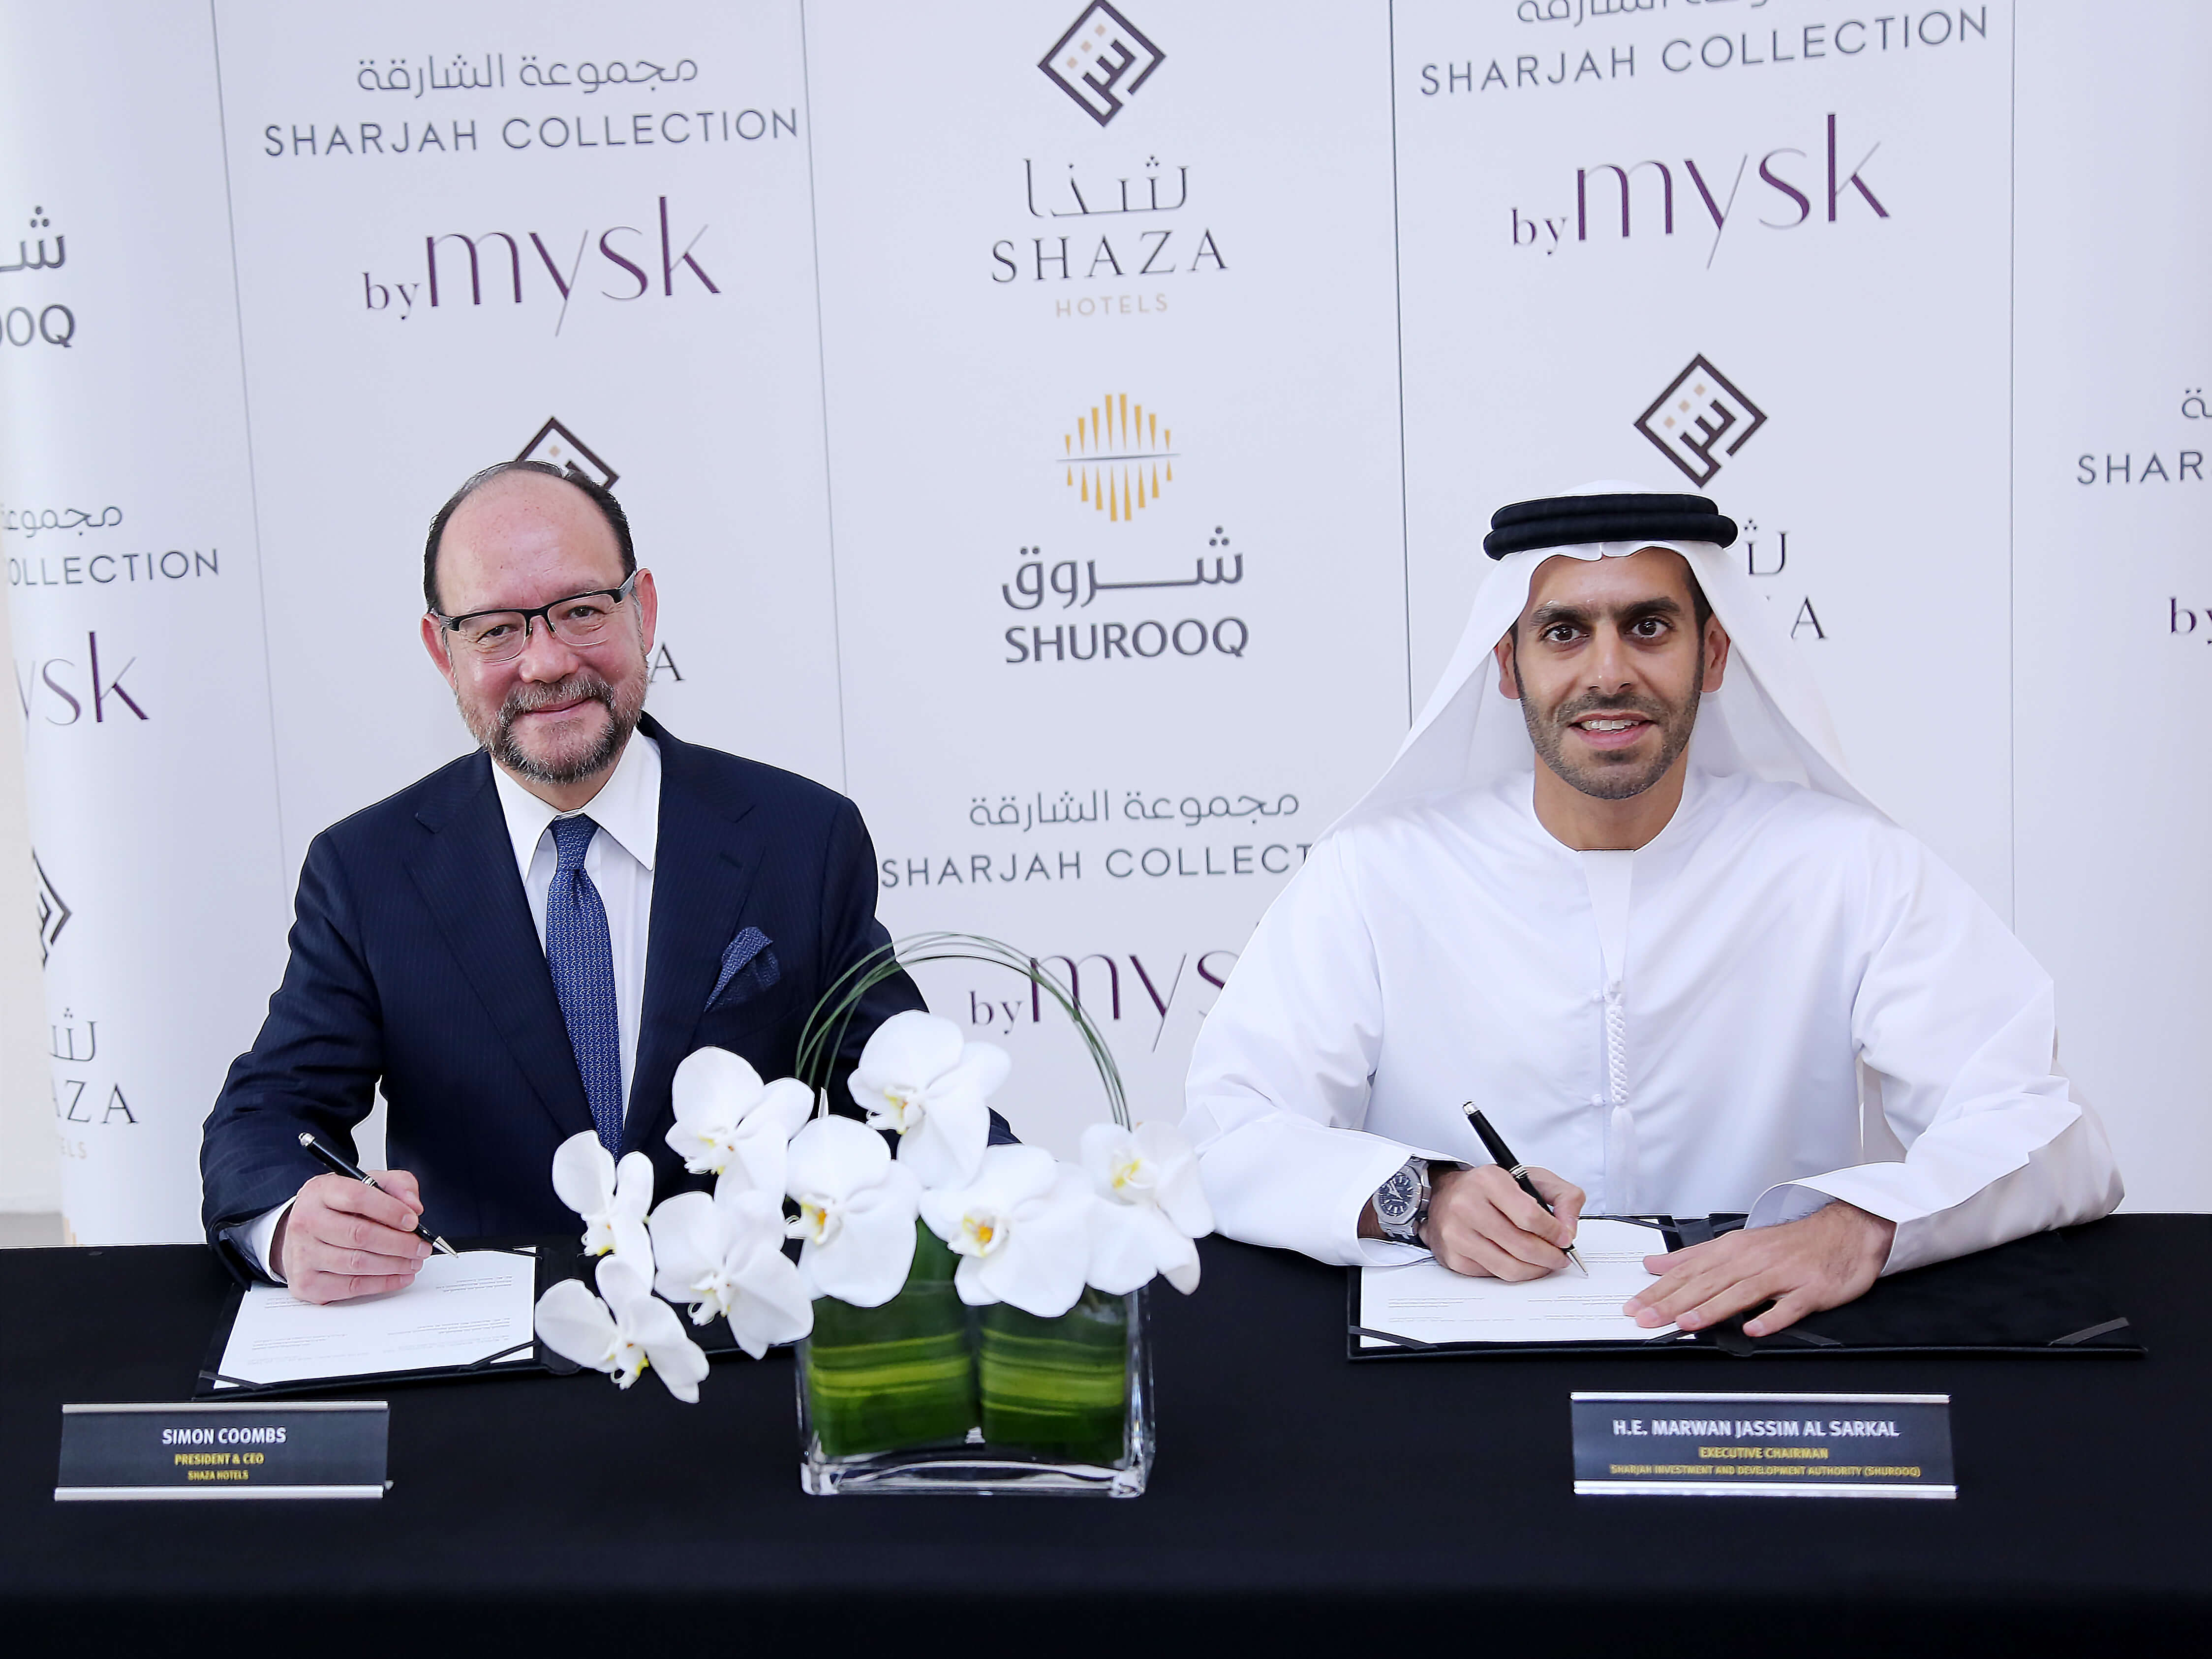 Shurooq Partners with Shaza Hotels For Management of Sharjah Collection Retreats in Sharjah